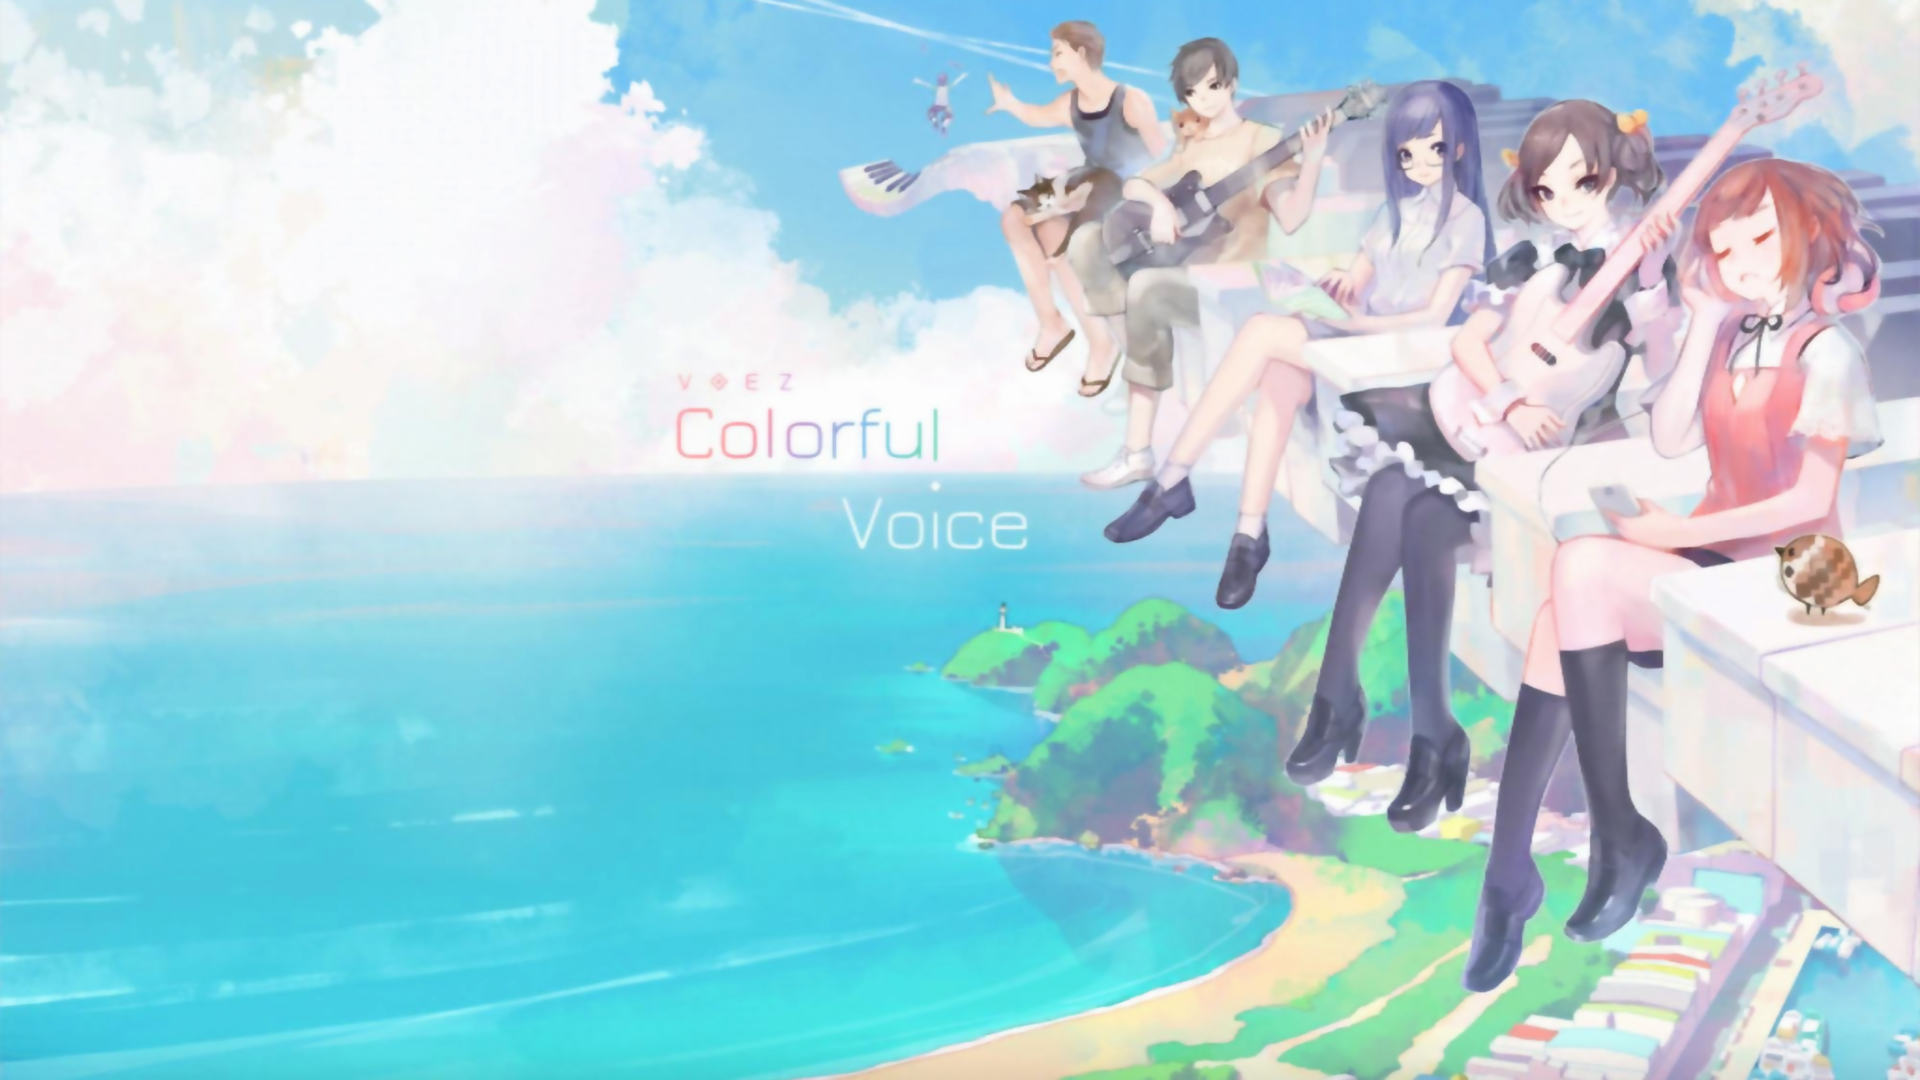 Voez wallpapers pictures images - Full hd anime wallpaper pack ...